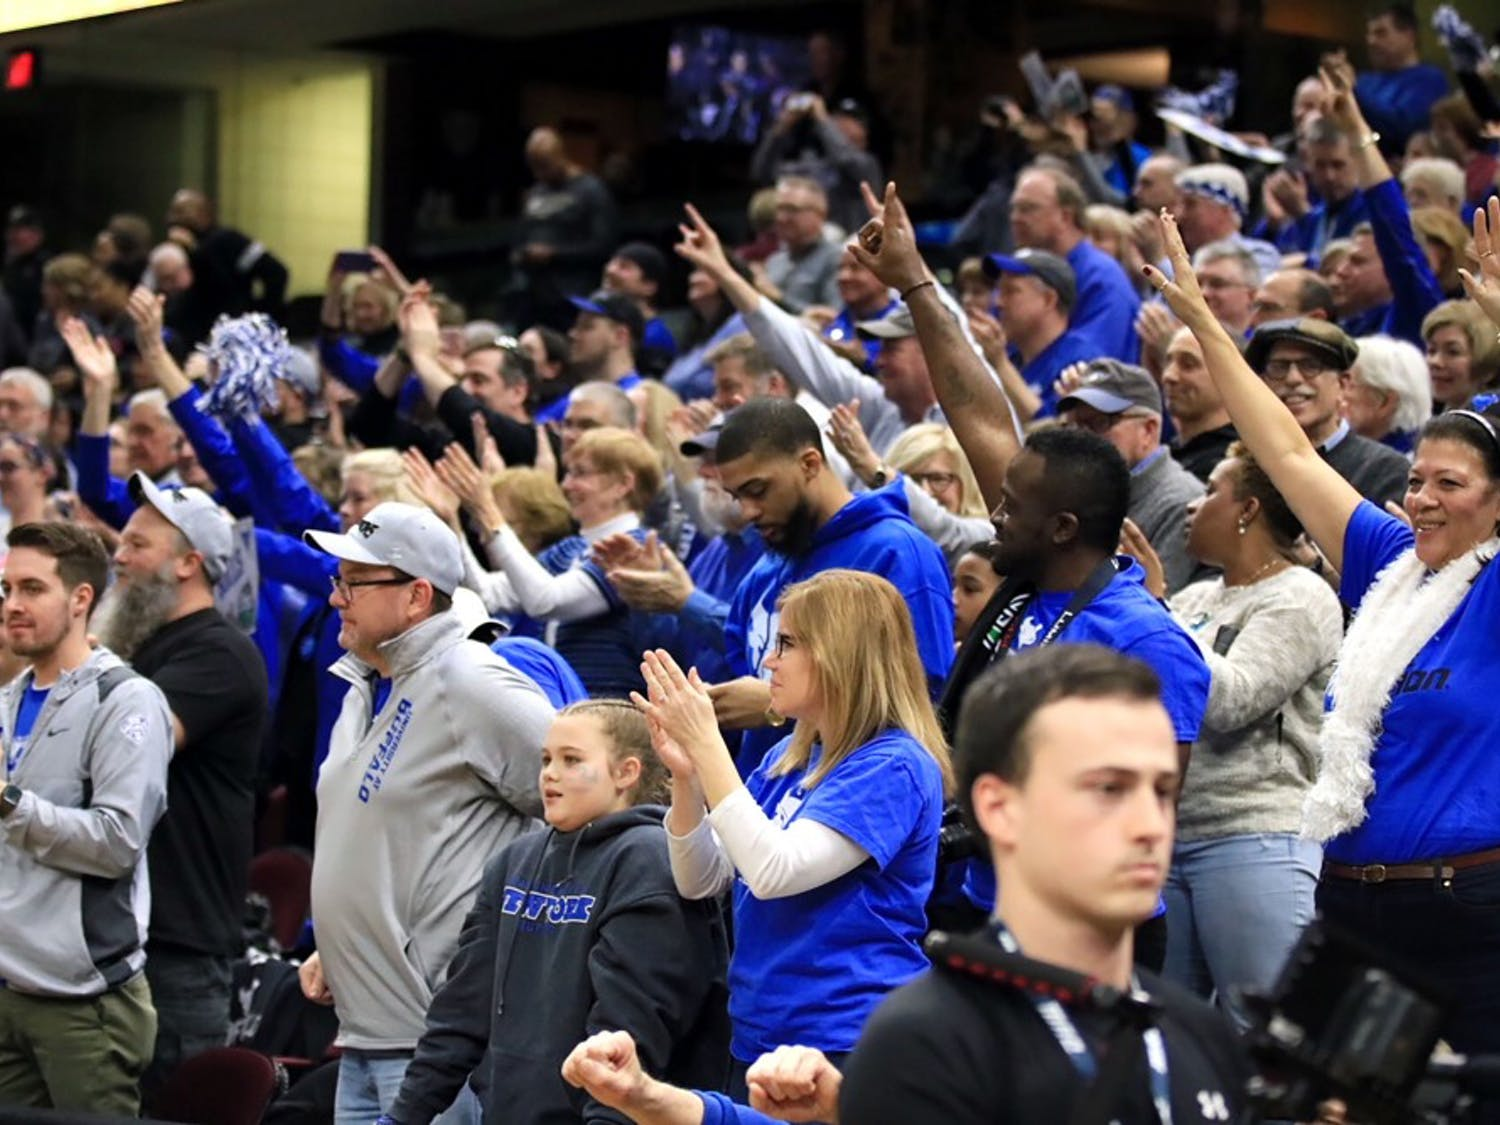 The Spectrum was live at the Mid-American Conference basketball championship tournament. Photos from both the men and women's games from the 2018 tournaments.